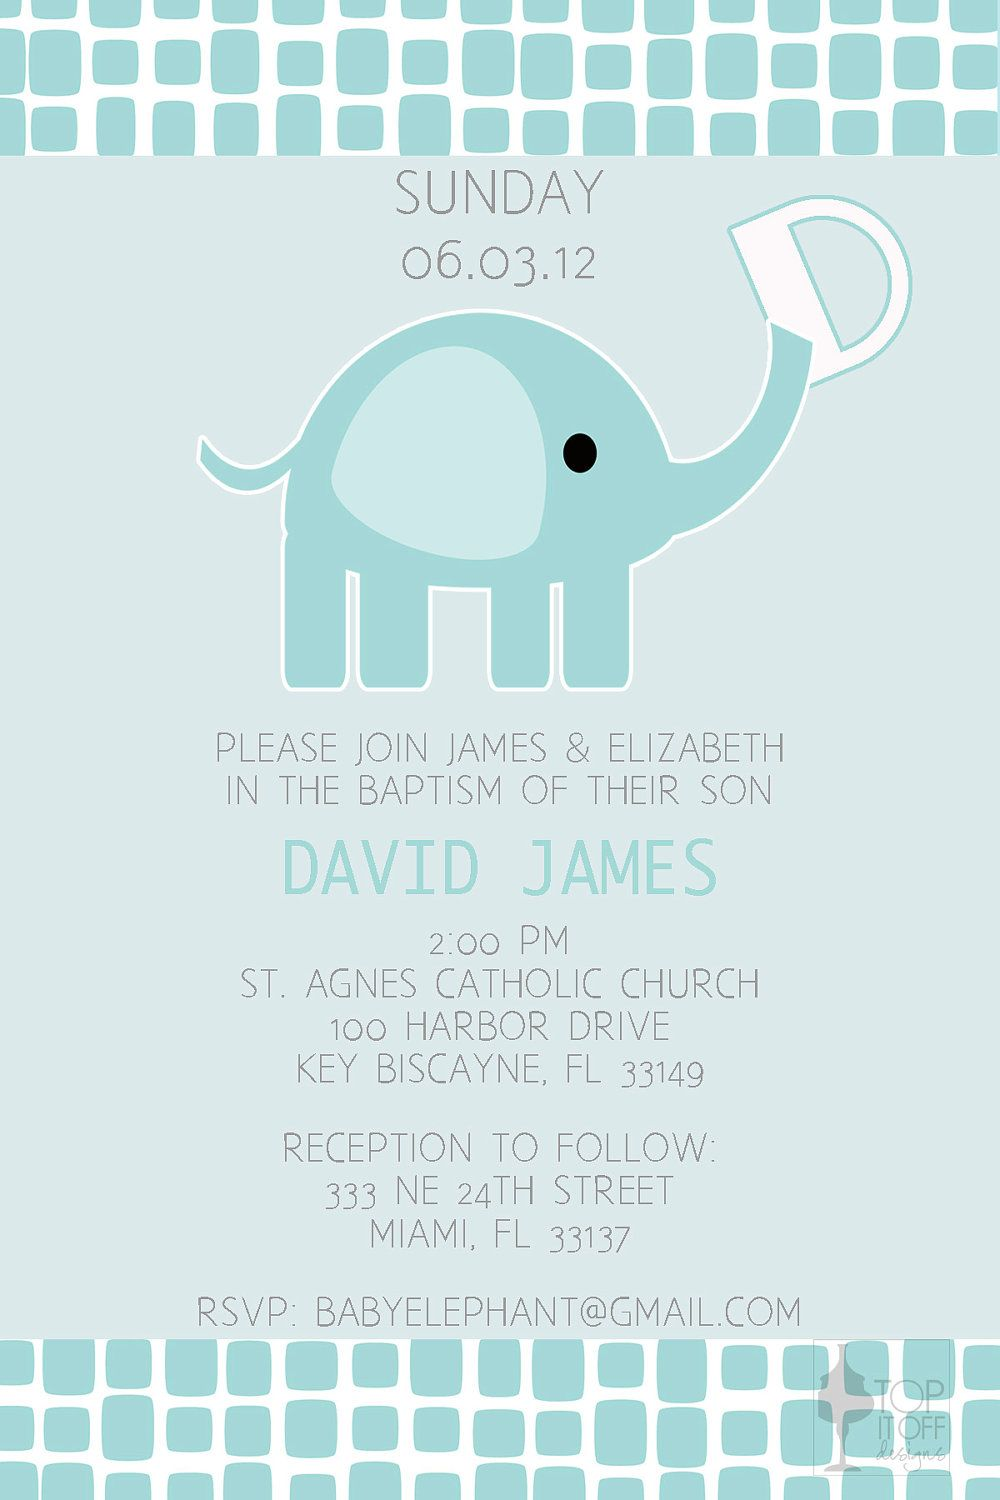 Baby Elephant Baptism Invitation - DIGITAL - DIY. $12.00, via Etsy ...